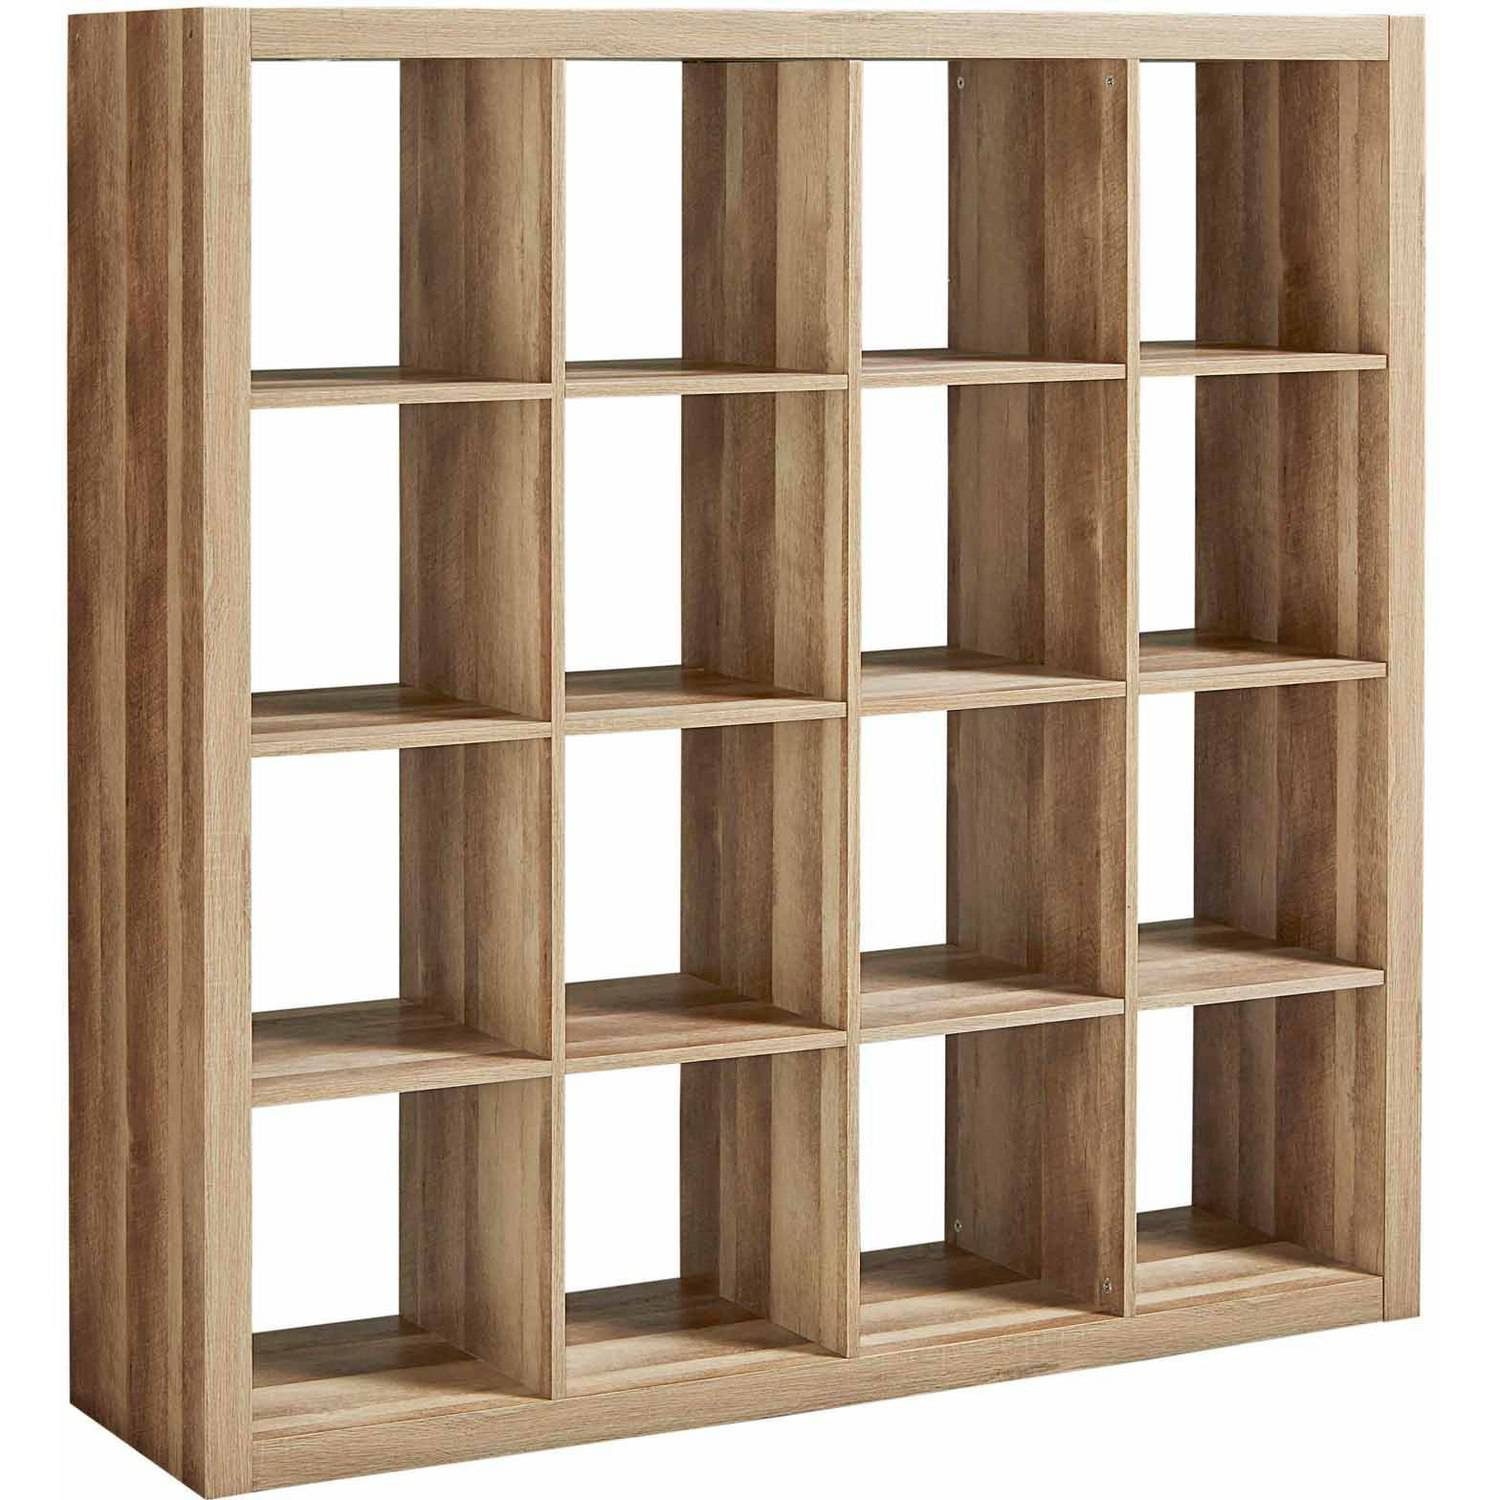 Charmant Better Homes And Gardens 16 Cube Organizer, Multiple Colors   Walmart.com